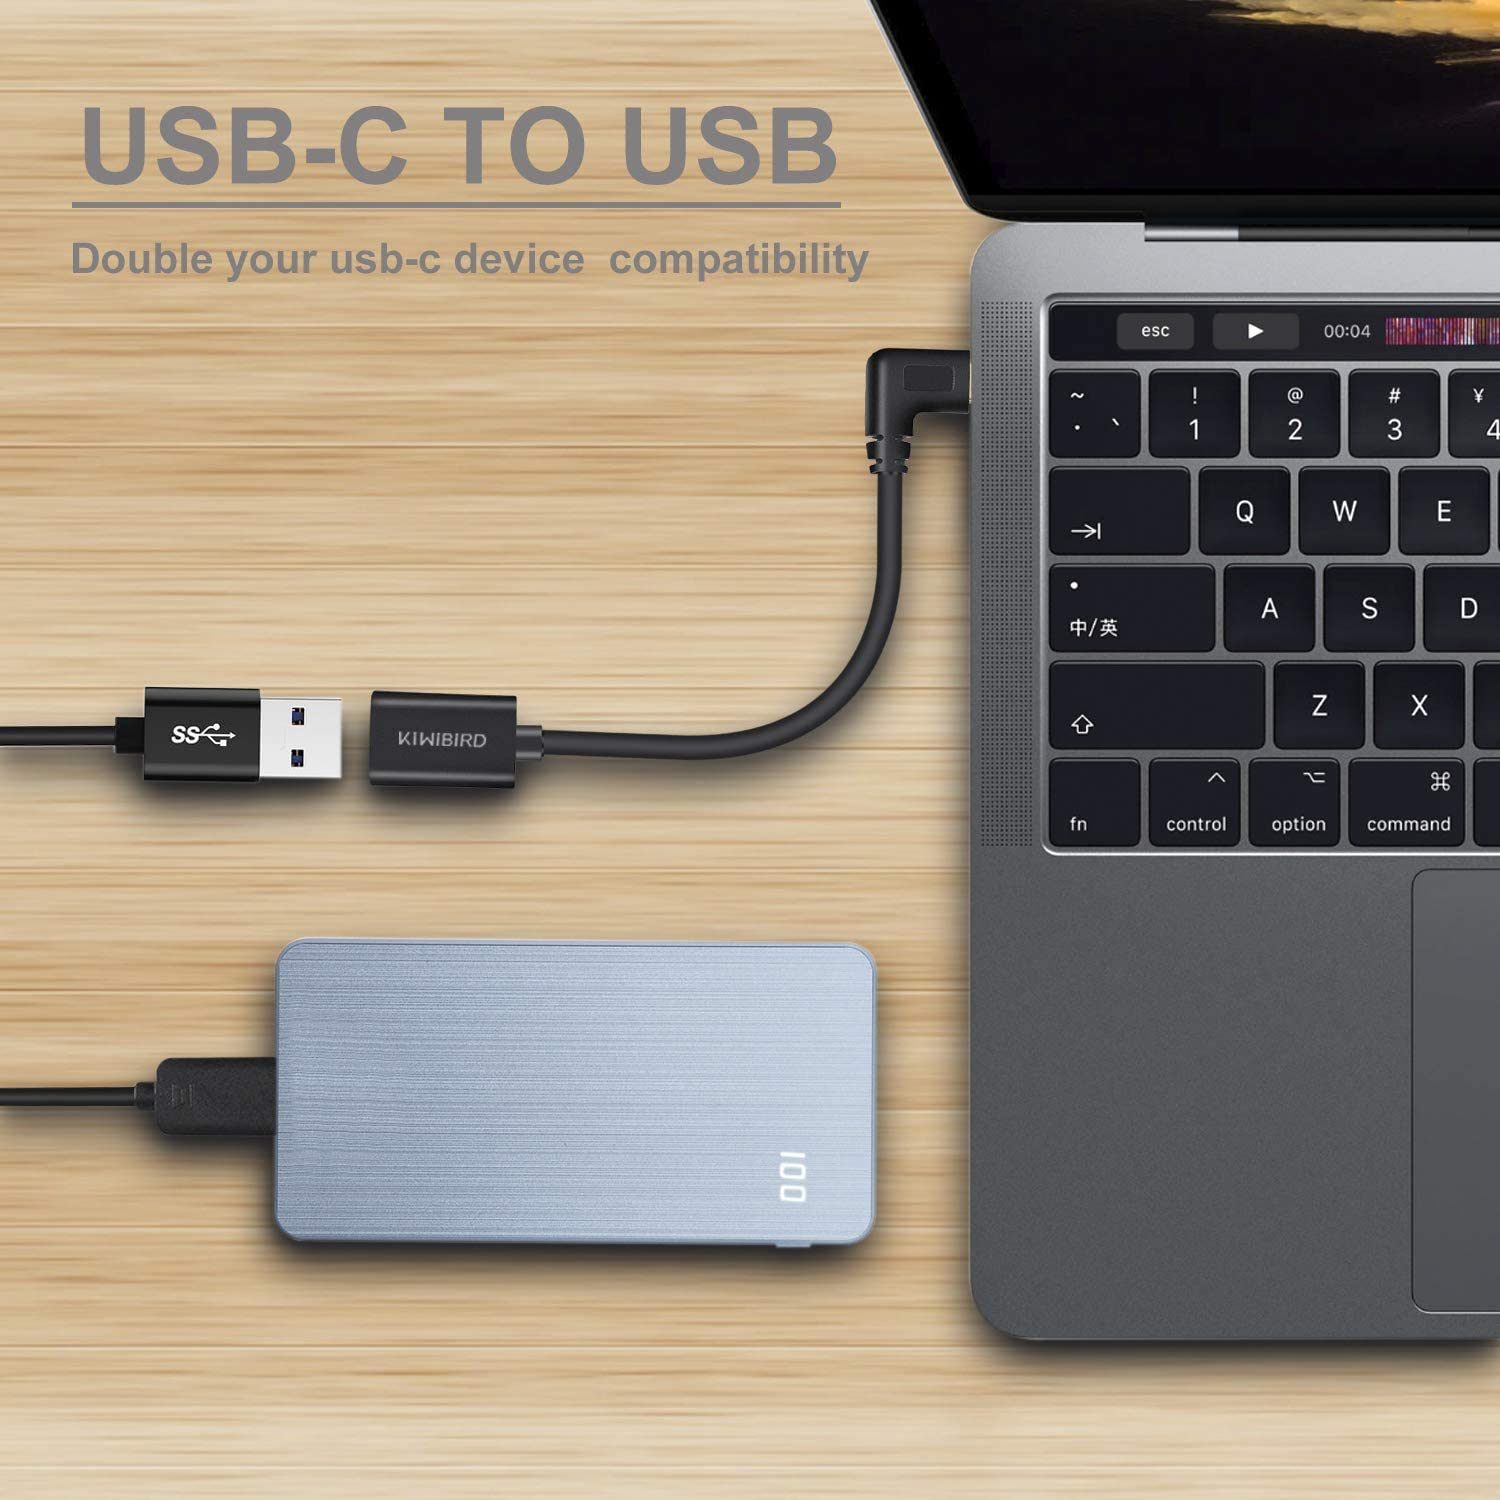 KiWiBiRD 90 Degree USB 3.1 Type C to USB 3.0 A Female Cable Adapter for New MacBook Pro 13//15 Galaxy Note 8//S8// S8+//S9//S9+ Tab S3 Google Pixel XL More Type-C Ready Devices 2 Pack